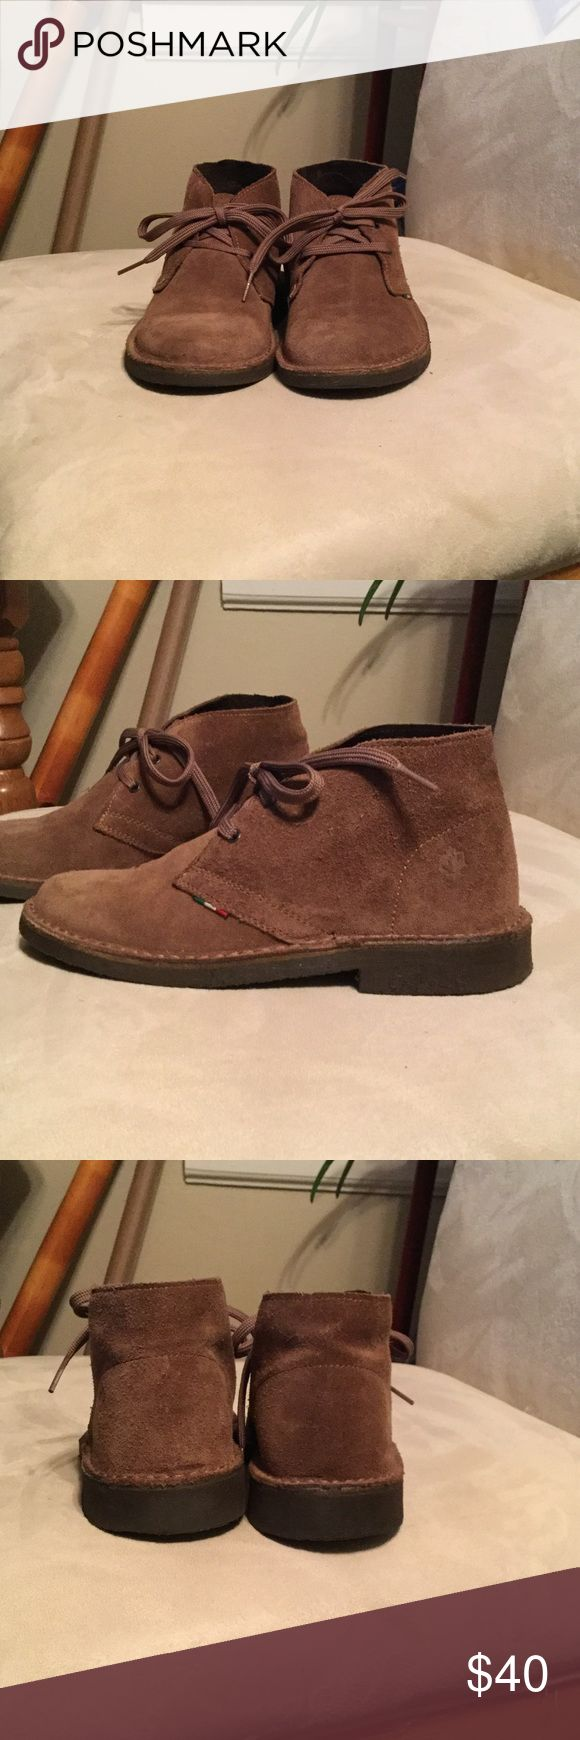 """Lumberjack boots """"Desert boots"""" tan suede ankle boots,new never worn outside. I wore them on the carpet trying to see if they fit me. lumberjack Shoes Ankle Boots & Booties"""